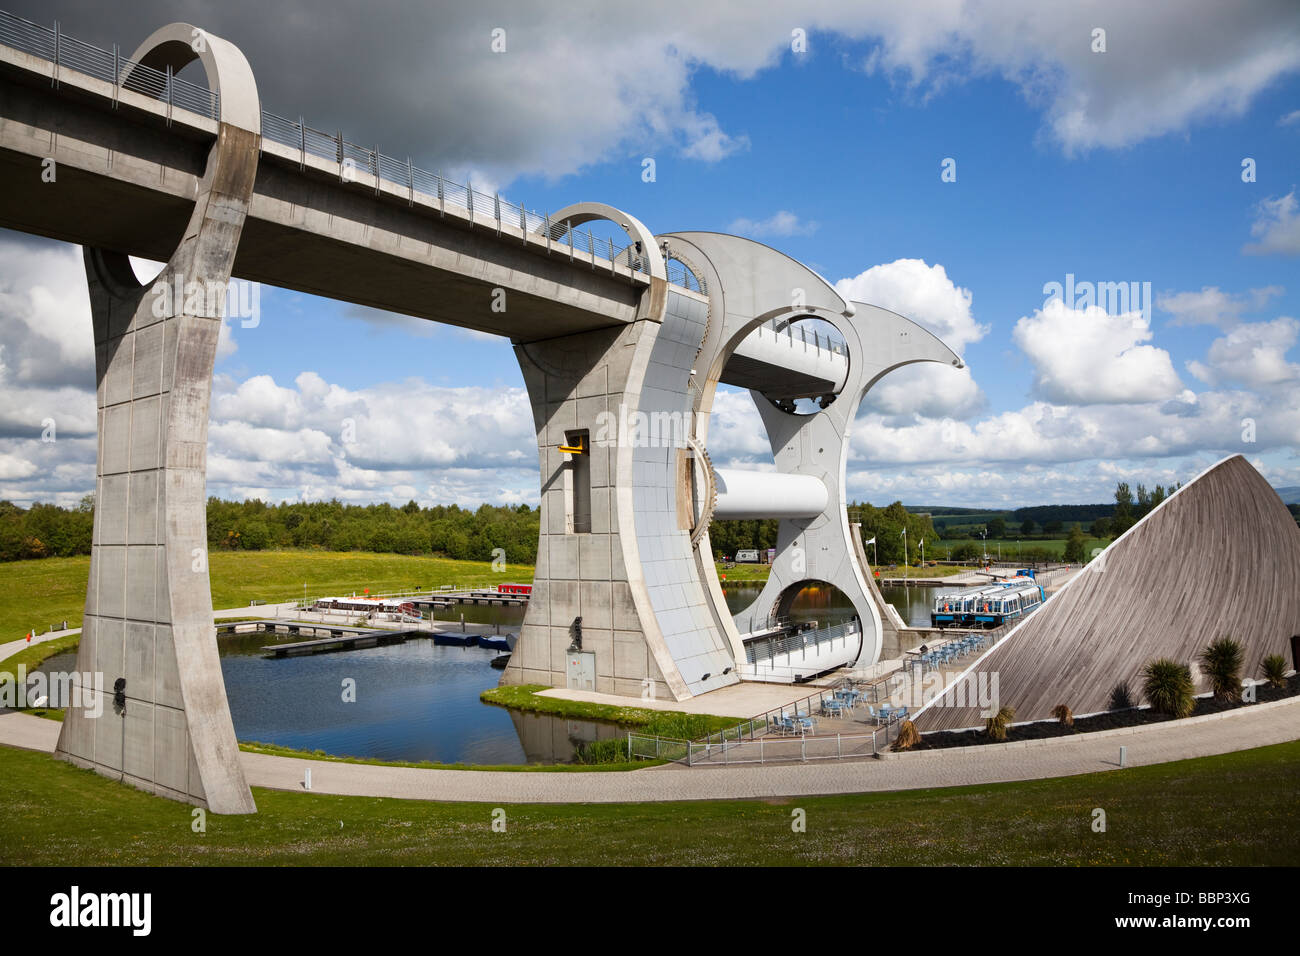 View of the British Waterways Falkirk Wheel on the Union Canal near Falkirk Scotland - Stock Image